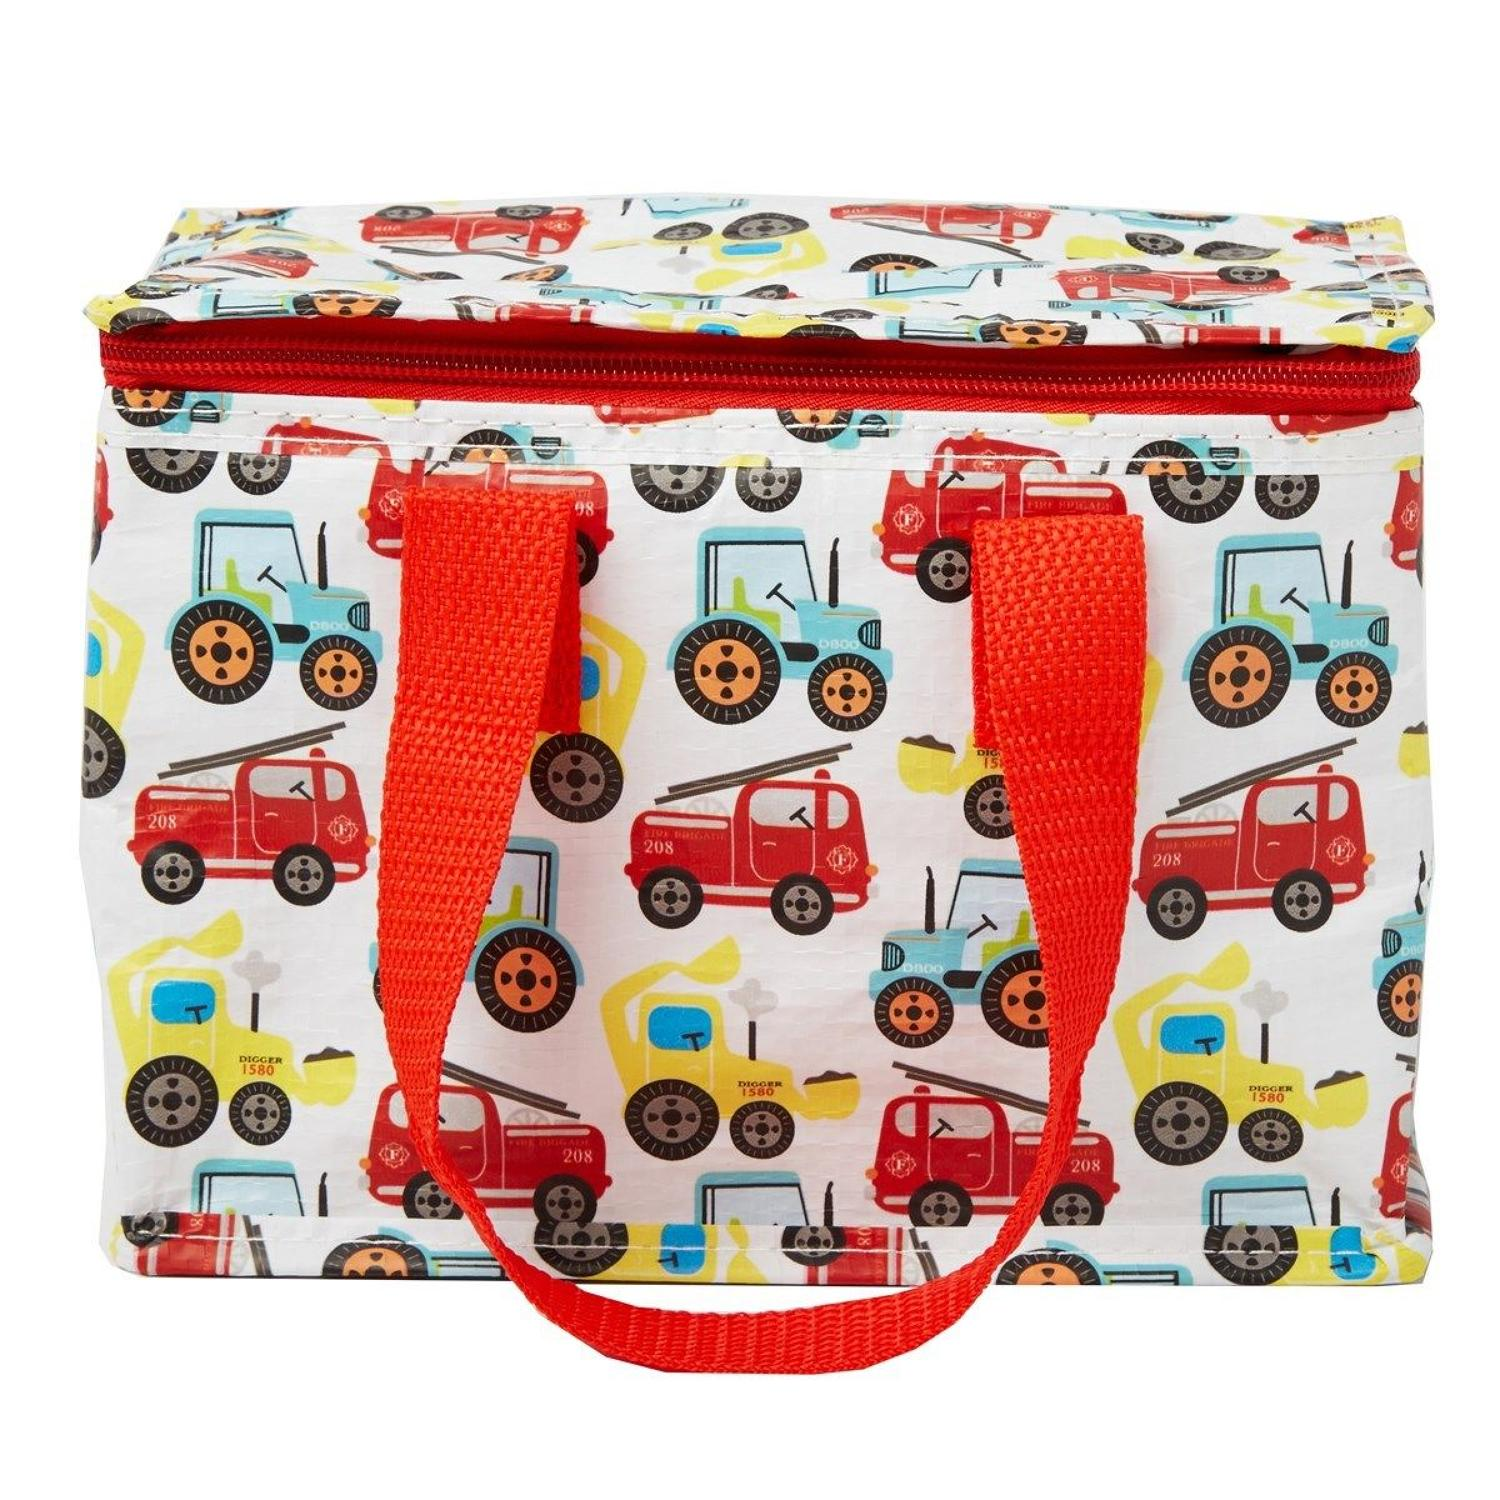 Illustrated Trucks Insulated Lunch Bag